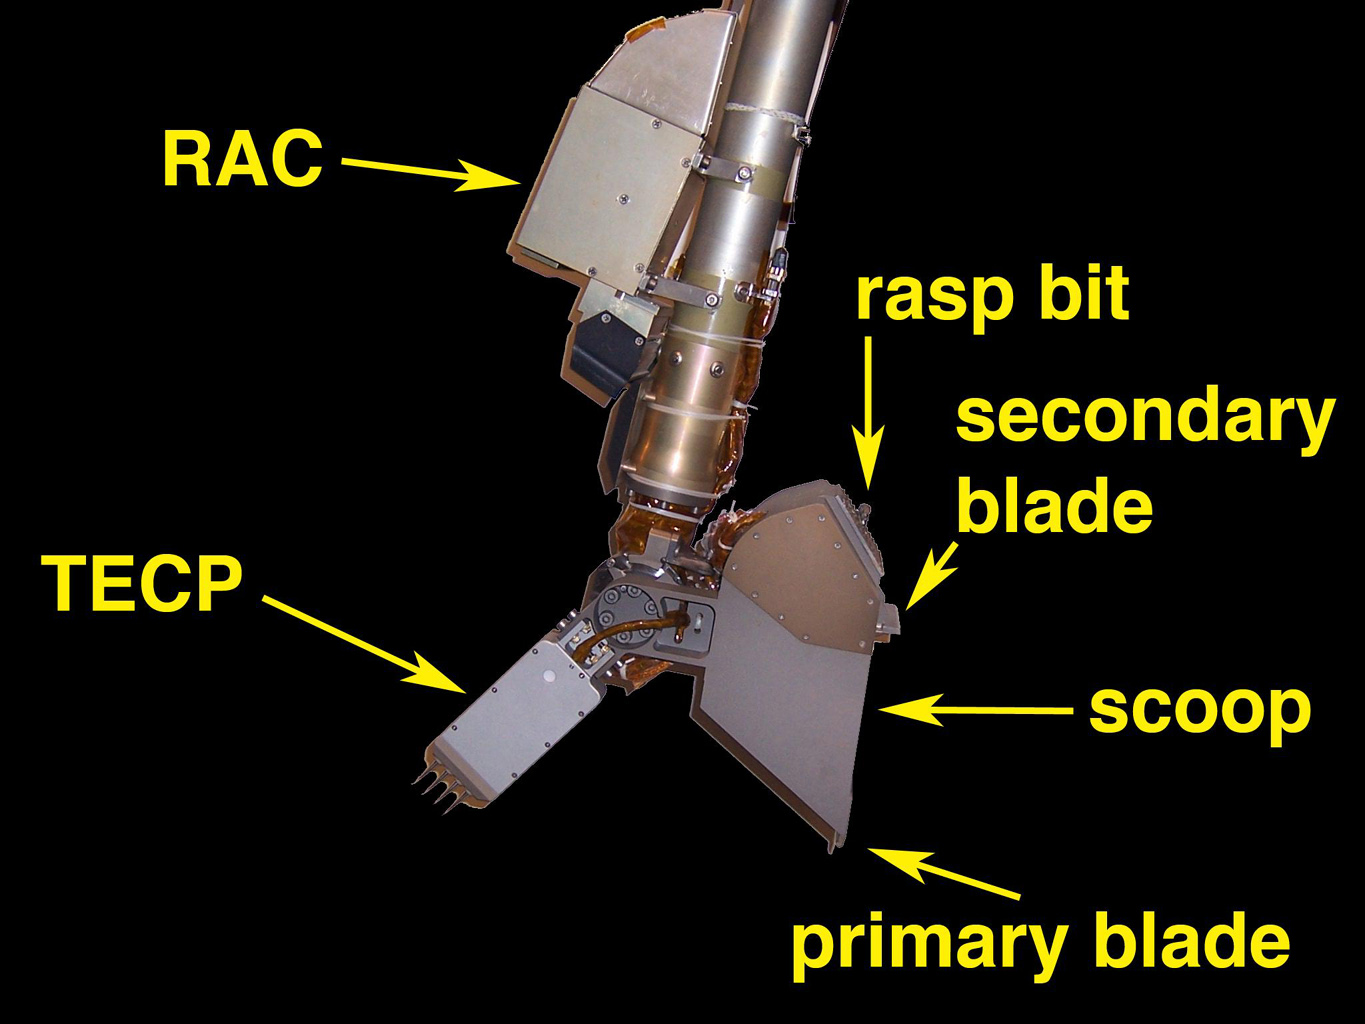 Image illustrates the tools on the end of the arm that are used to acquire samples, image the contents of the scoop, and perform science experiments.